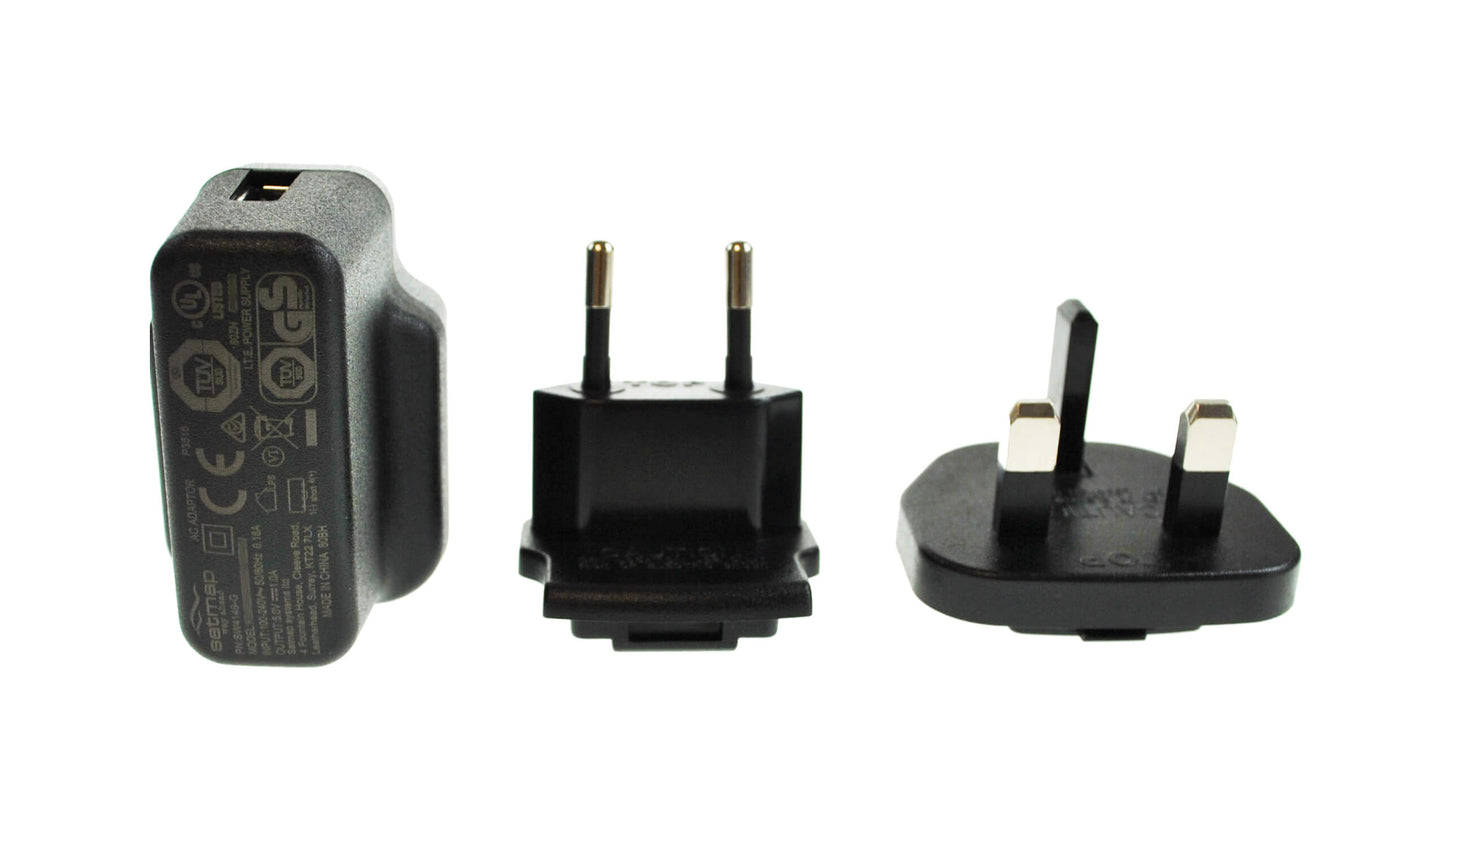 Spare Wall Charger (Active 10/12/20)